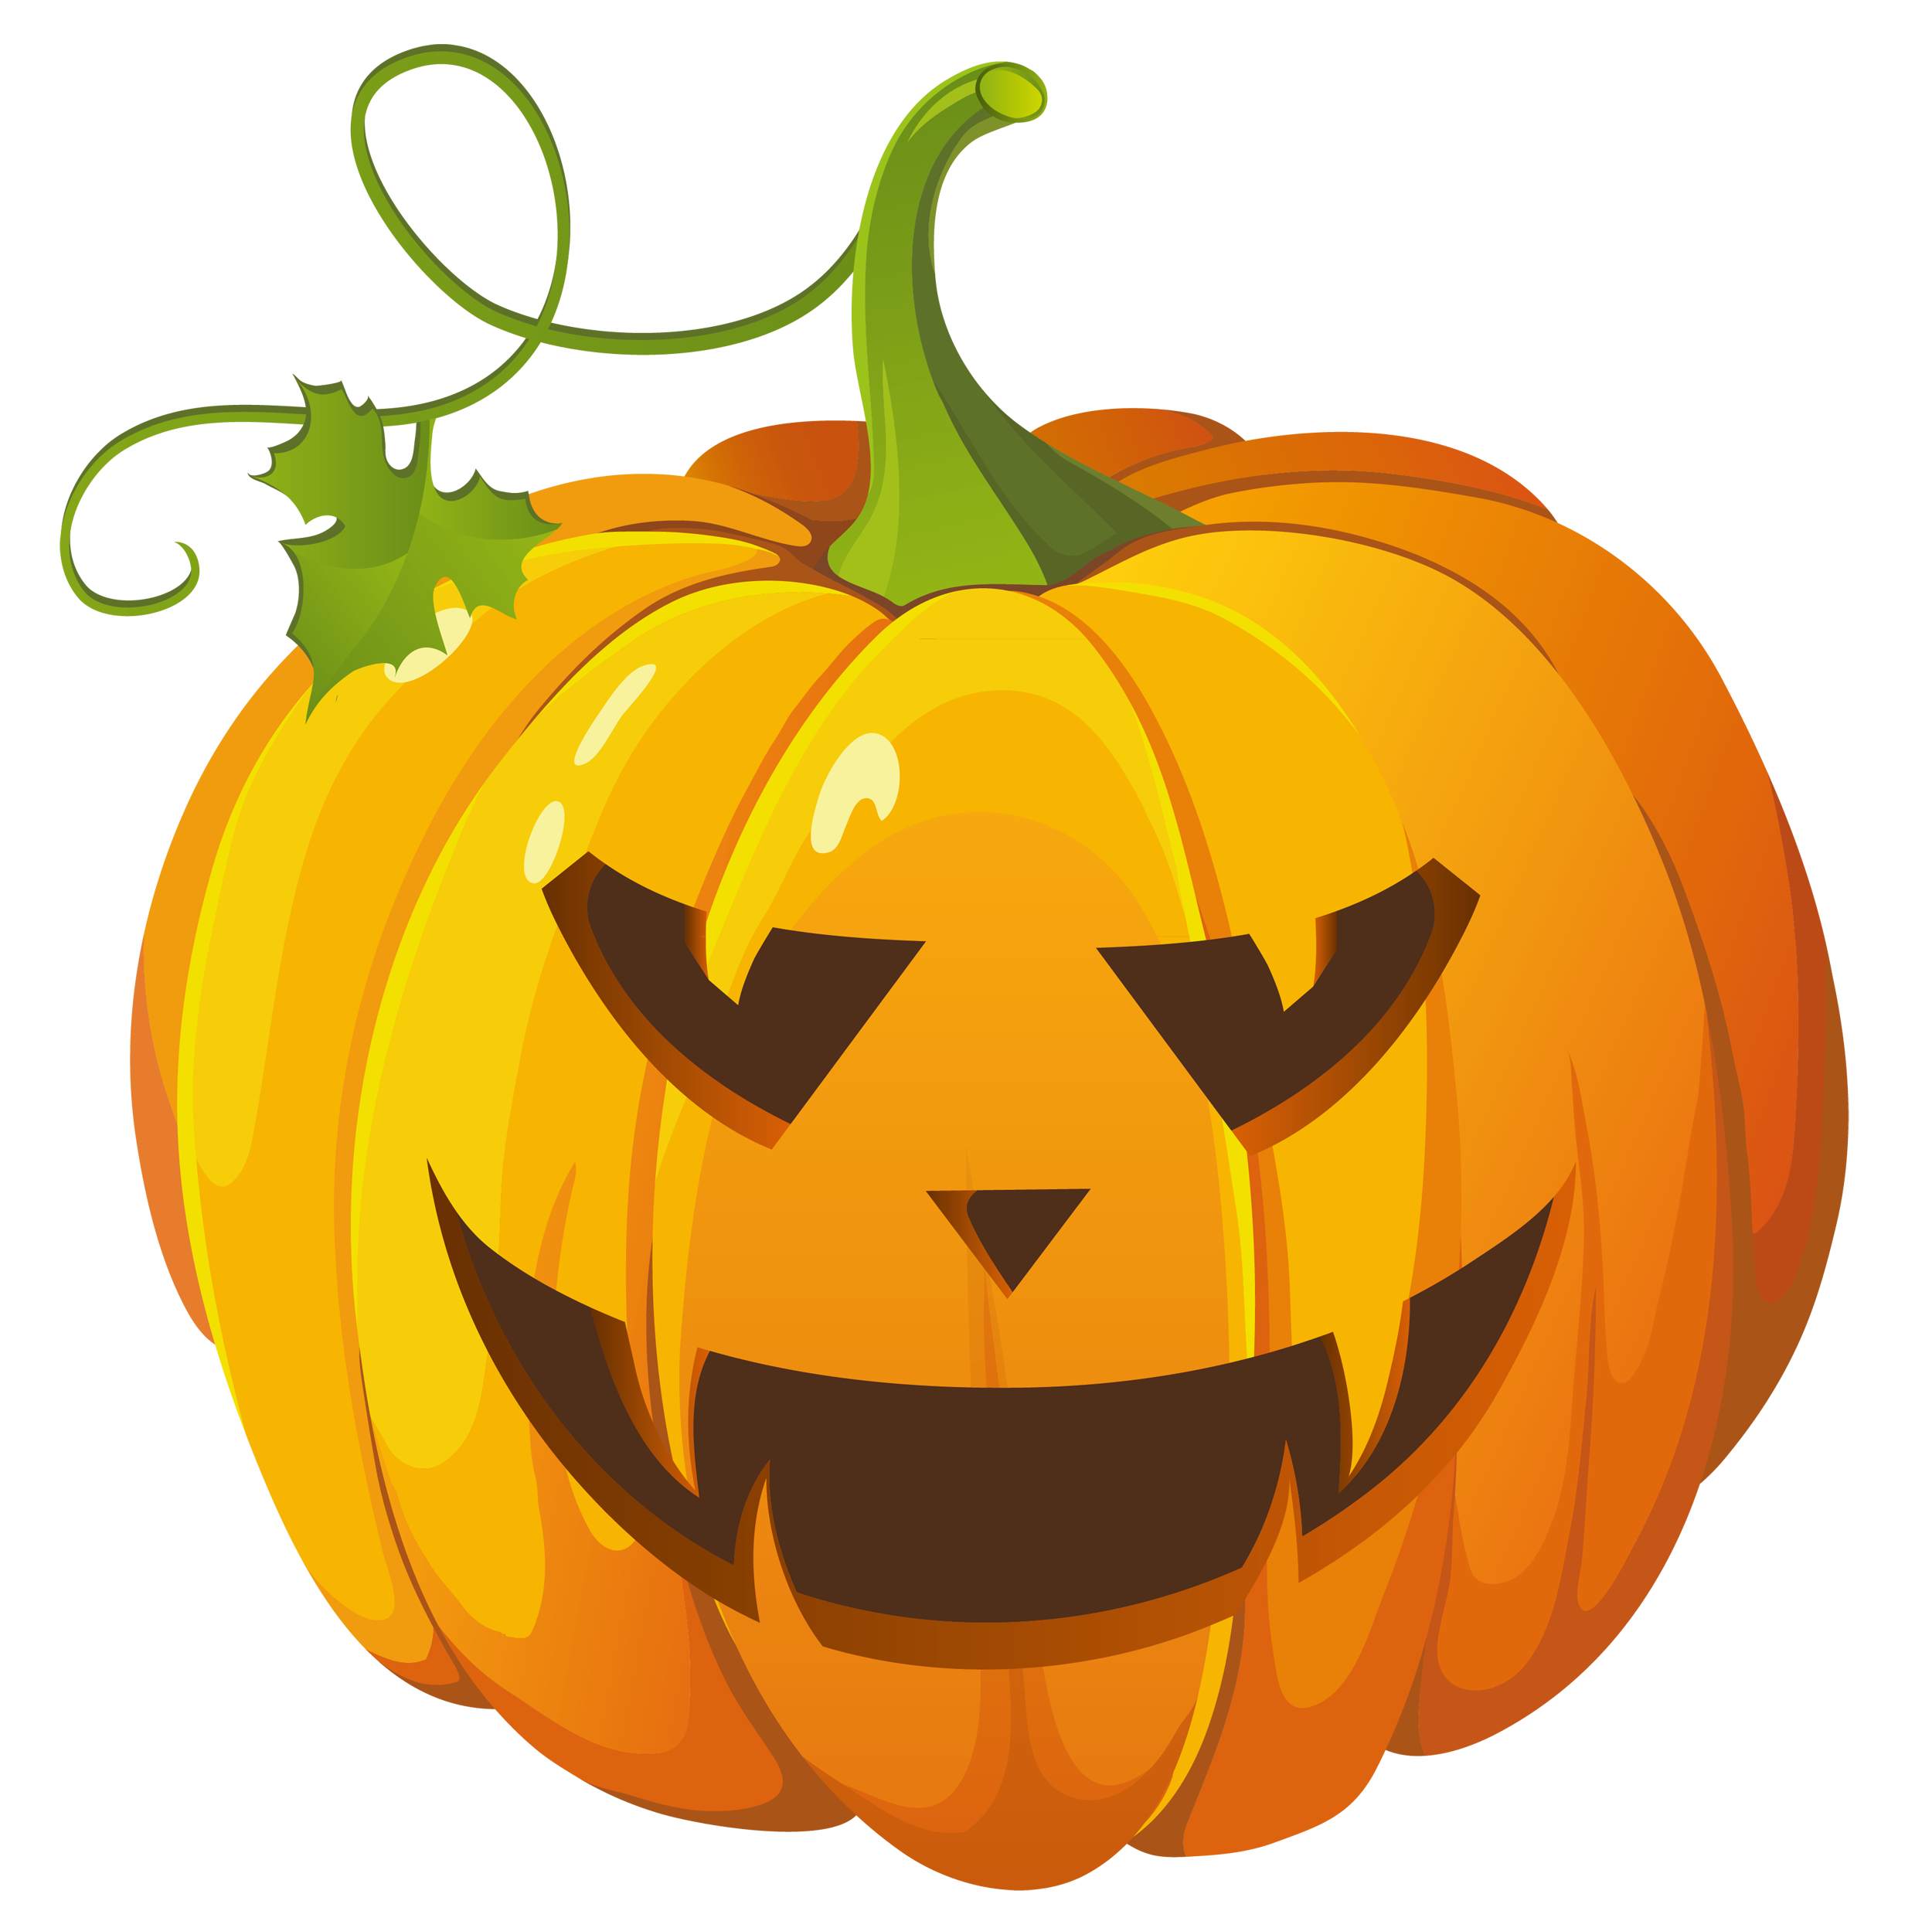 Tall pumpkin clipart image library download Free Pumpkin Clipart at GetDrawings.com | Free for personal use Free ... image library download